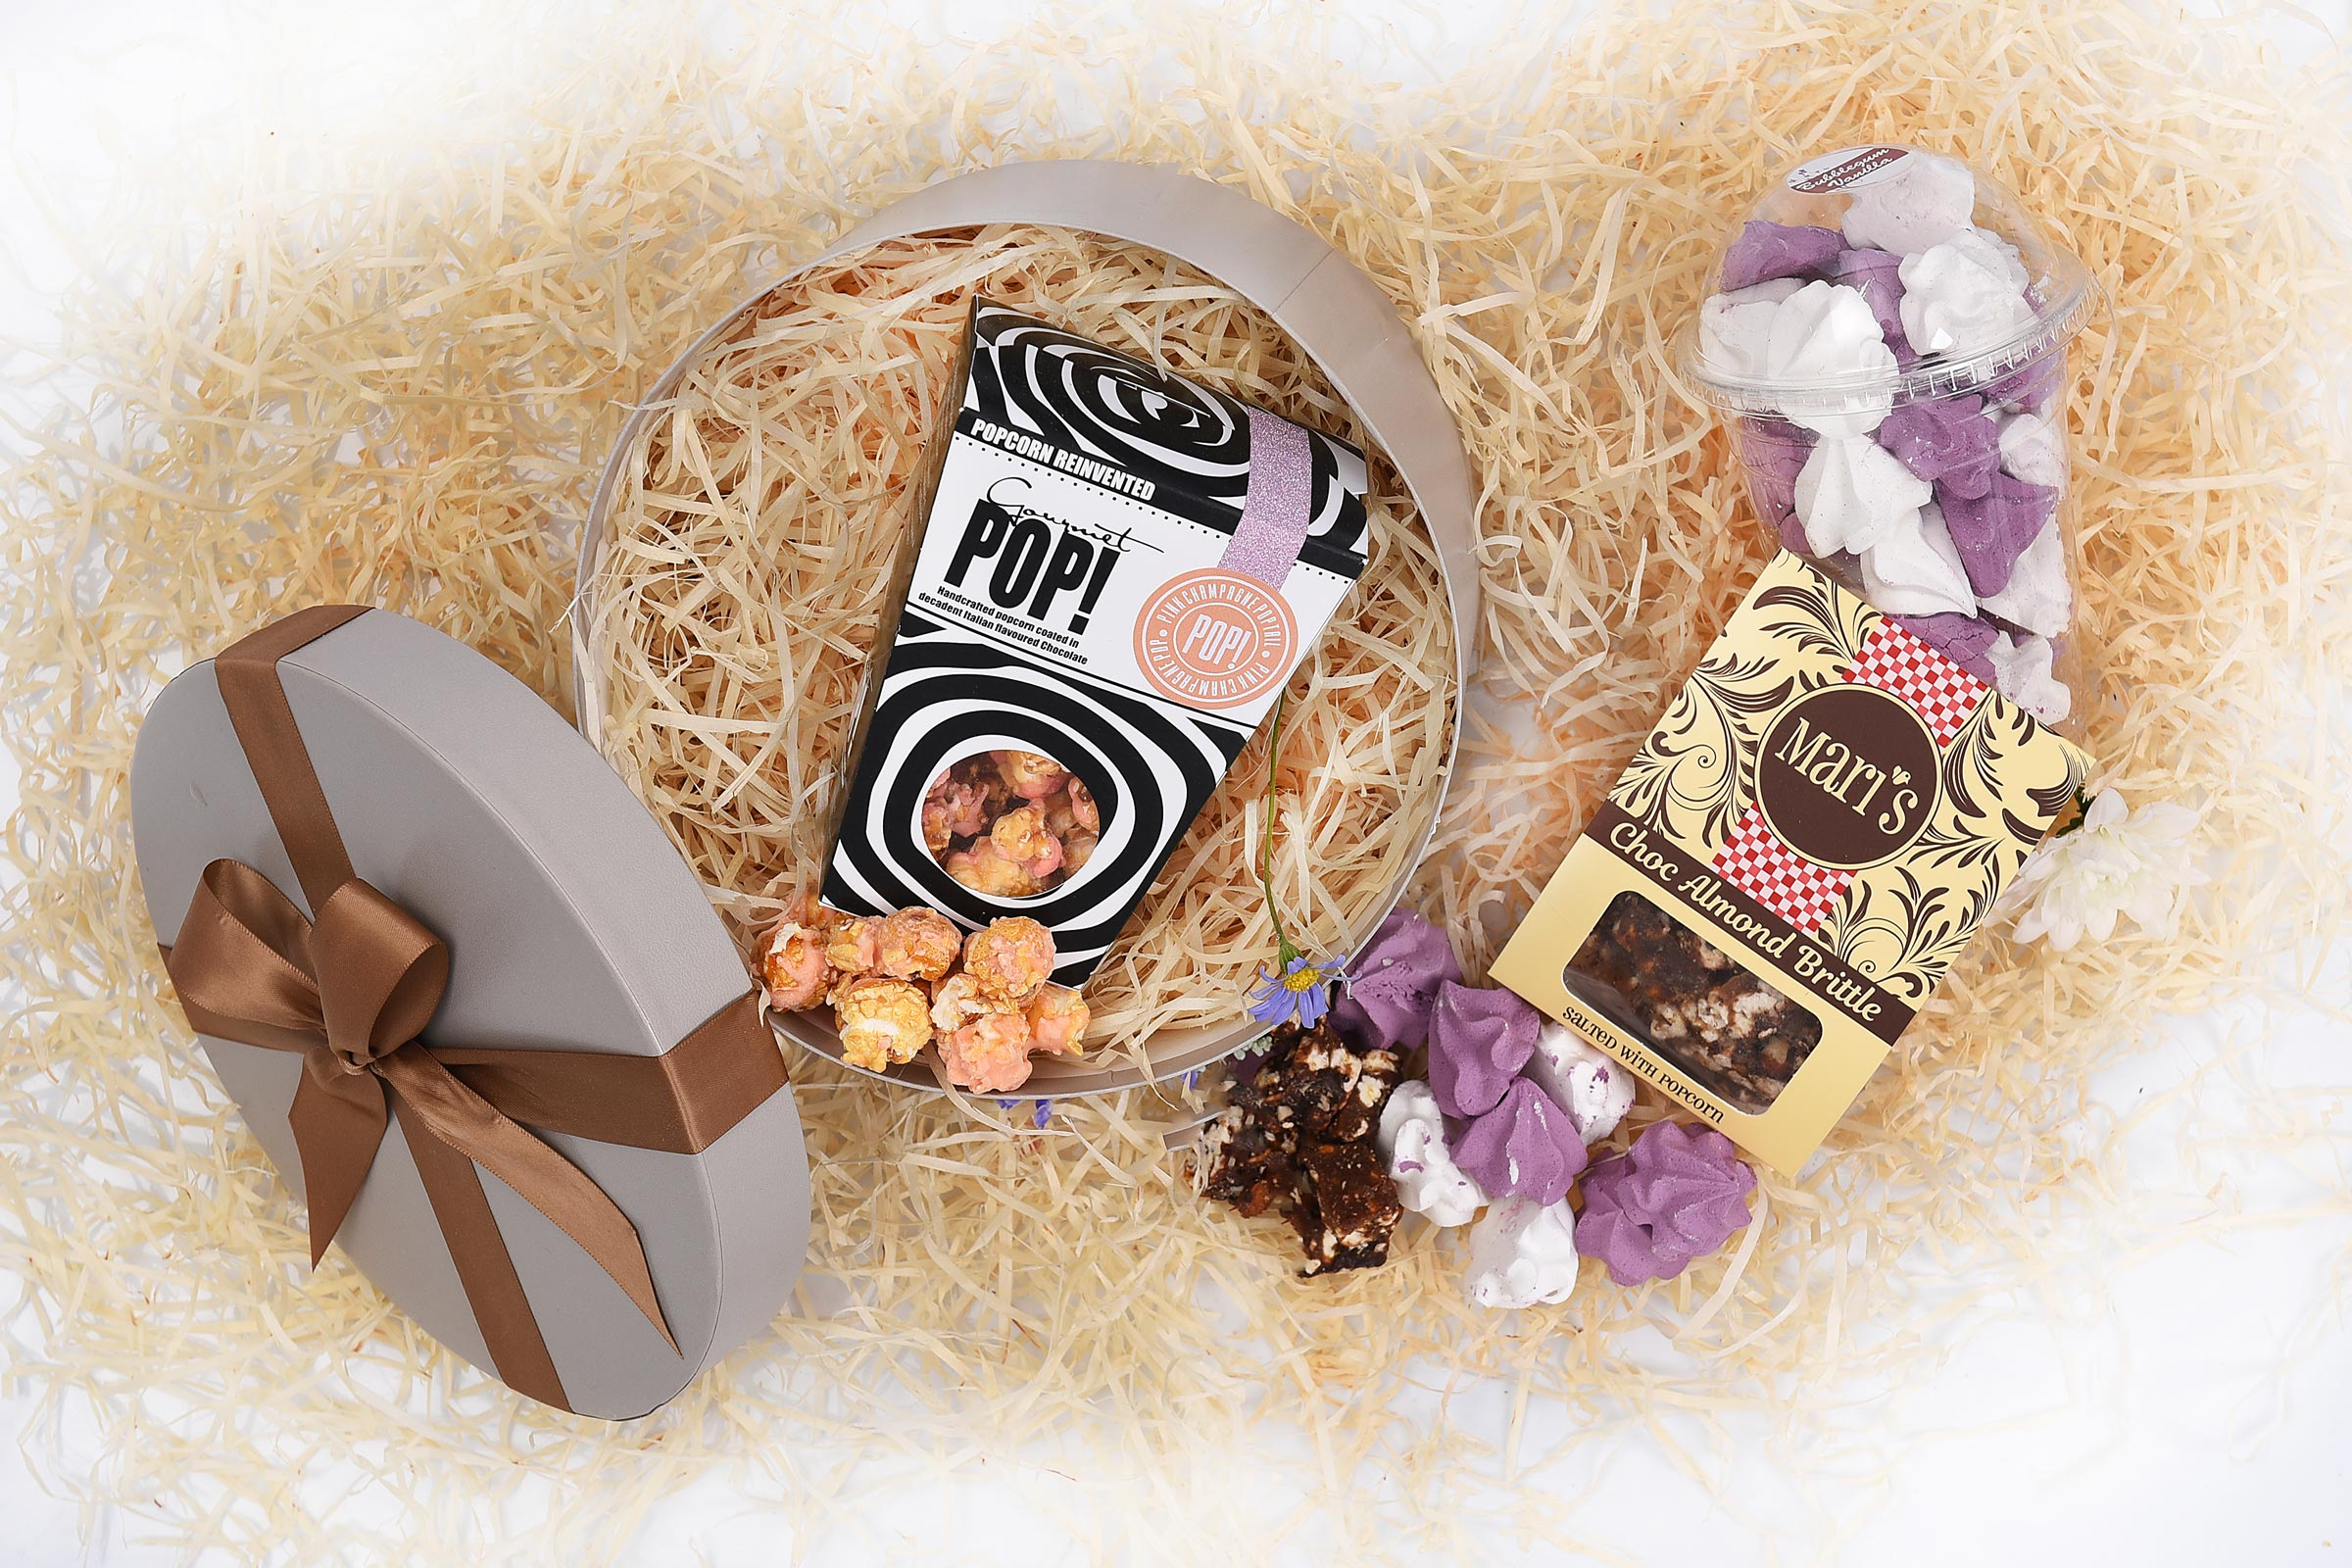 Baby Announcements Popcorn-Brittle-Meringues-Sweets-Gift-Hamper-World